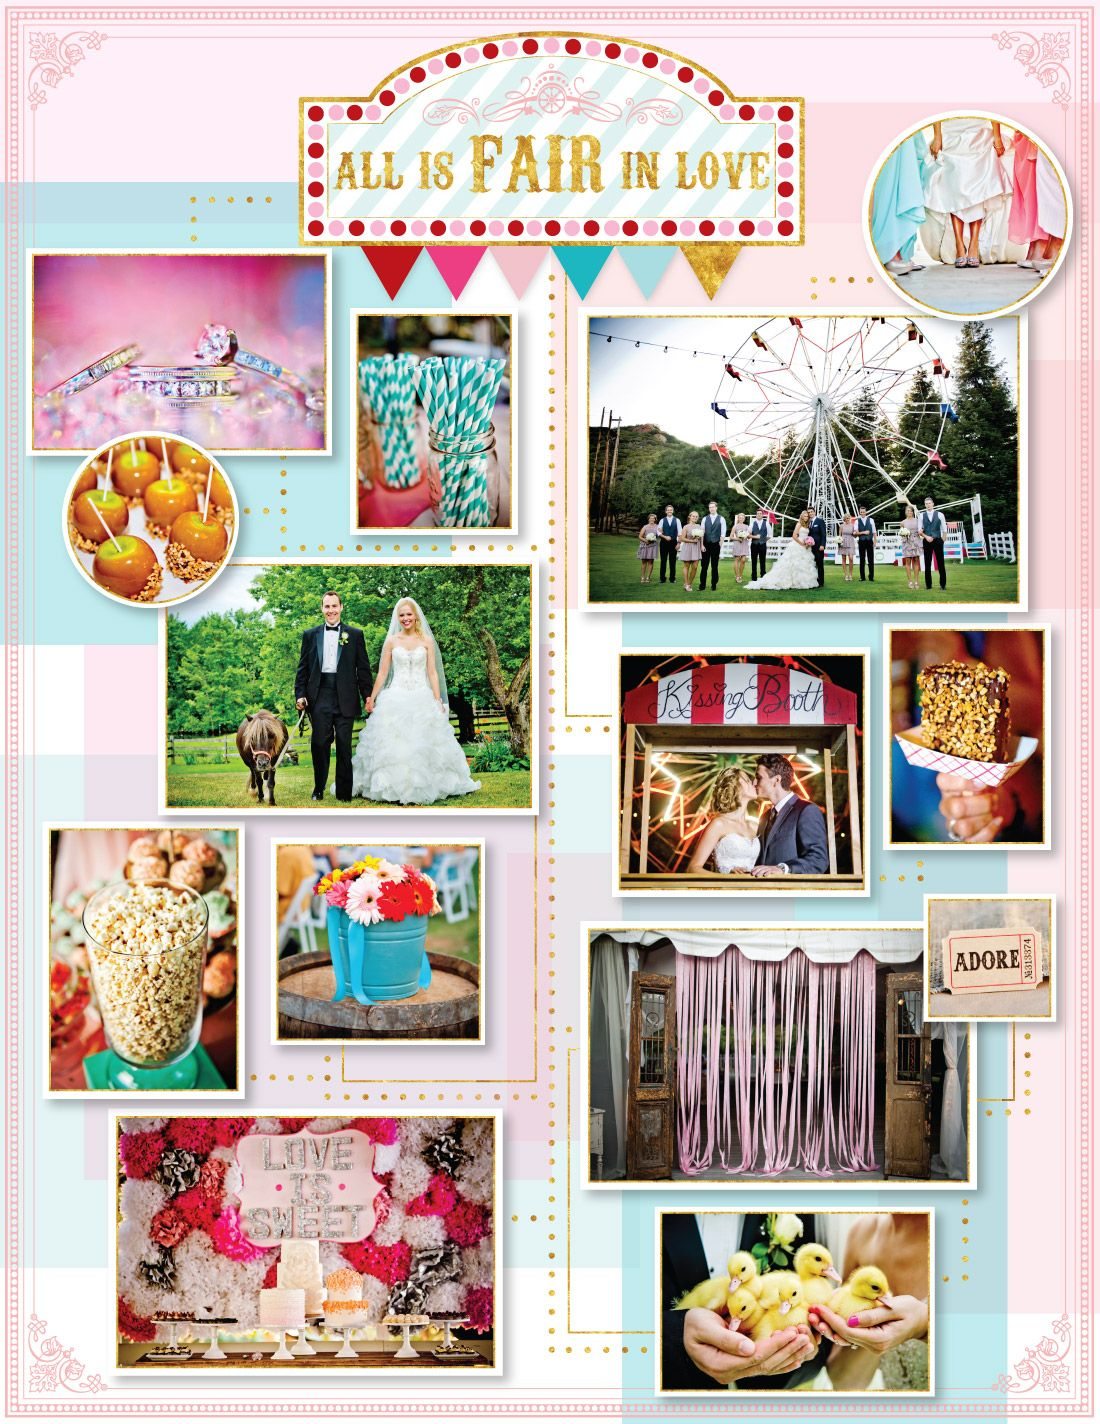 A Fair Style Affair Wedding Inspiration For County Themed Celebration See More At Www Truephotographyweddings